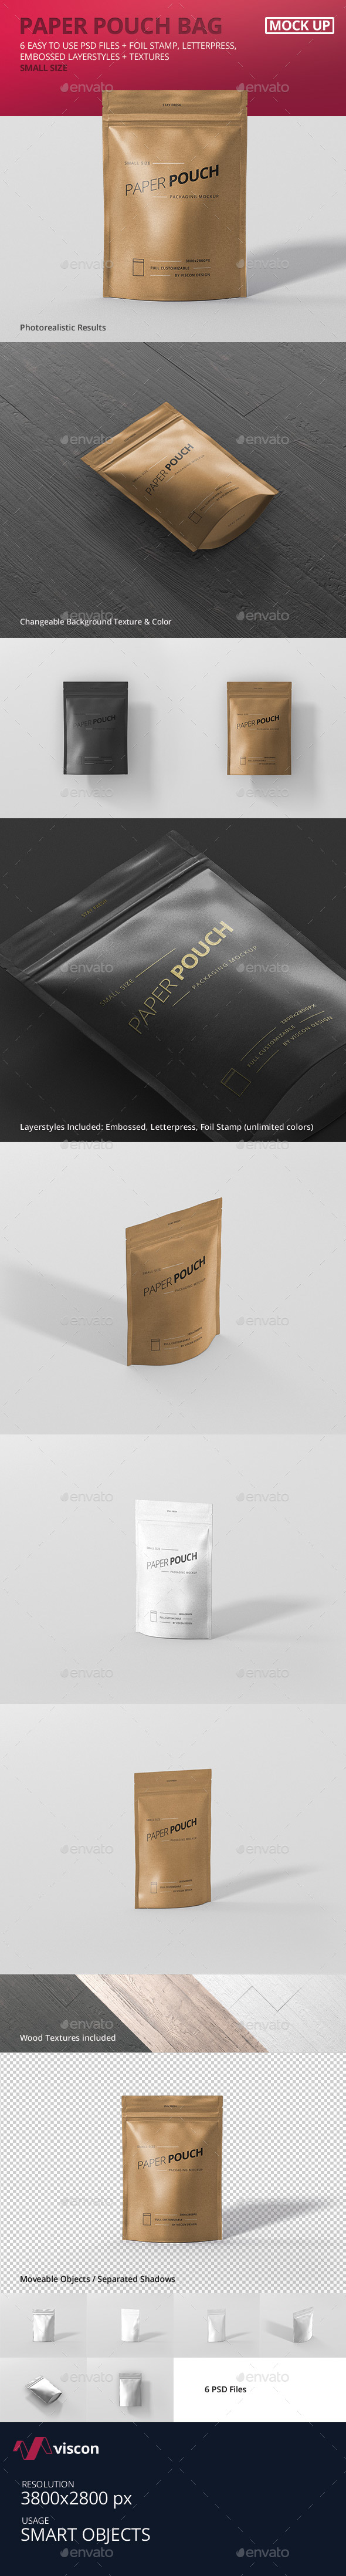 Paper Pouch Bag Mockup Small Size - Food and Drink Packaging